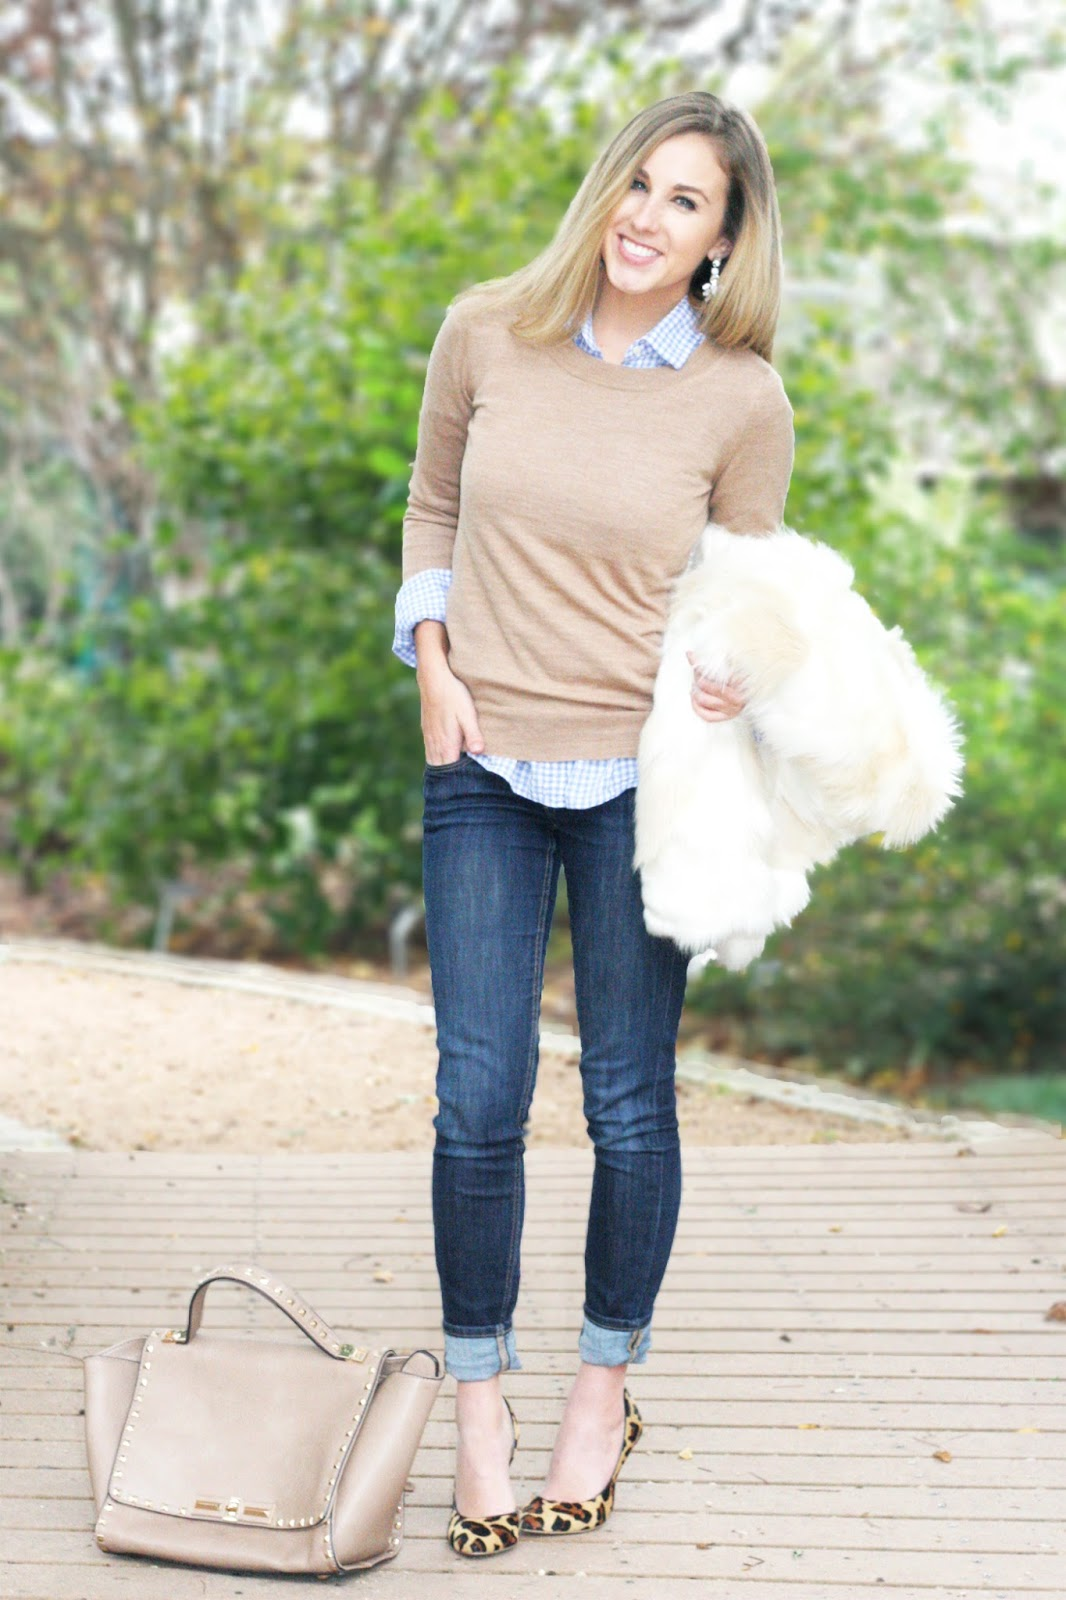 beige-cardigan-crew-neck-sweater-layered-with-fur